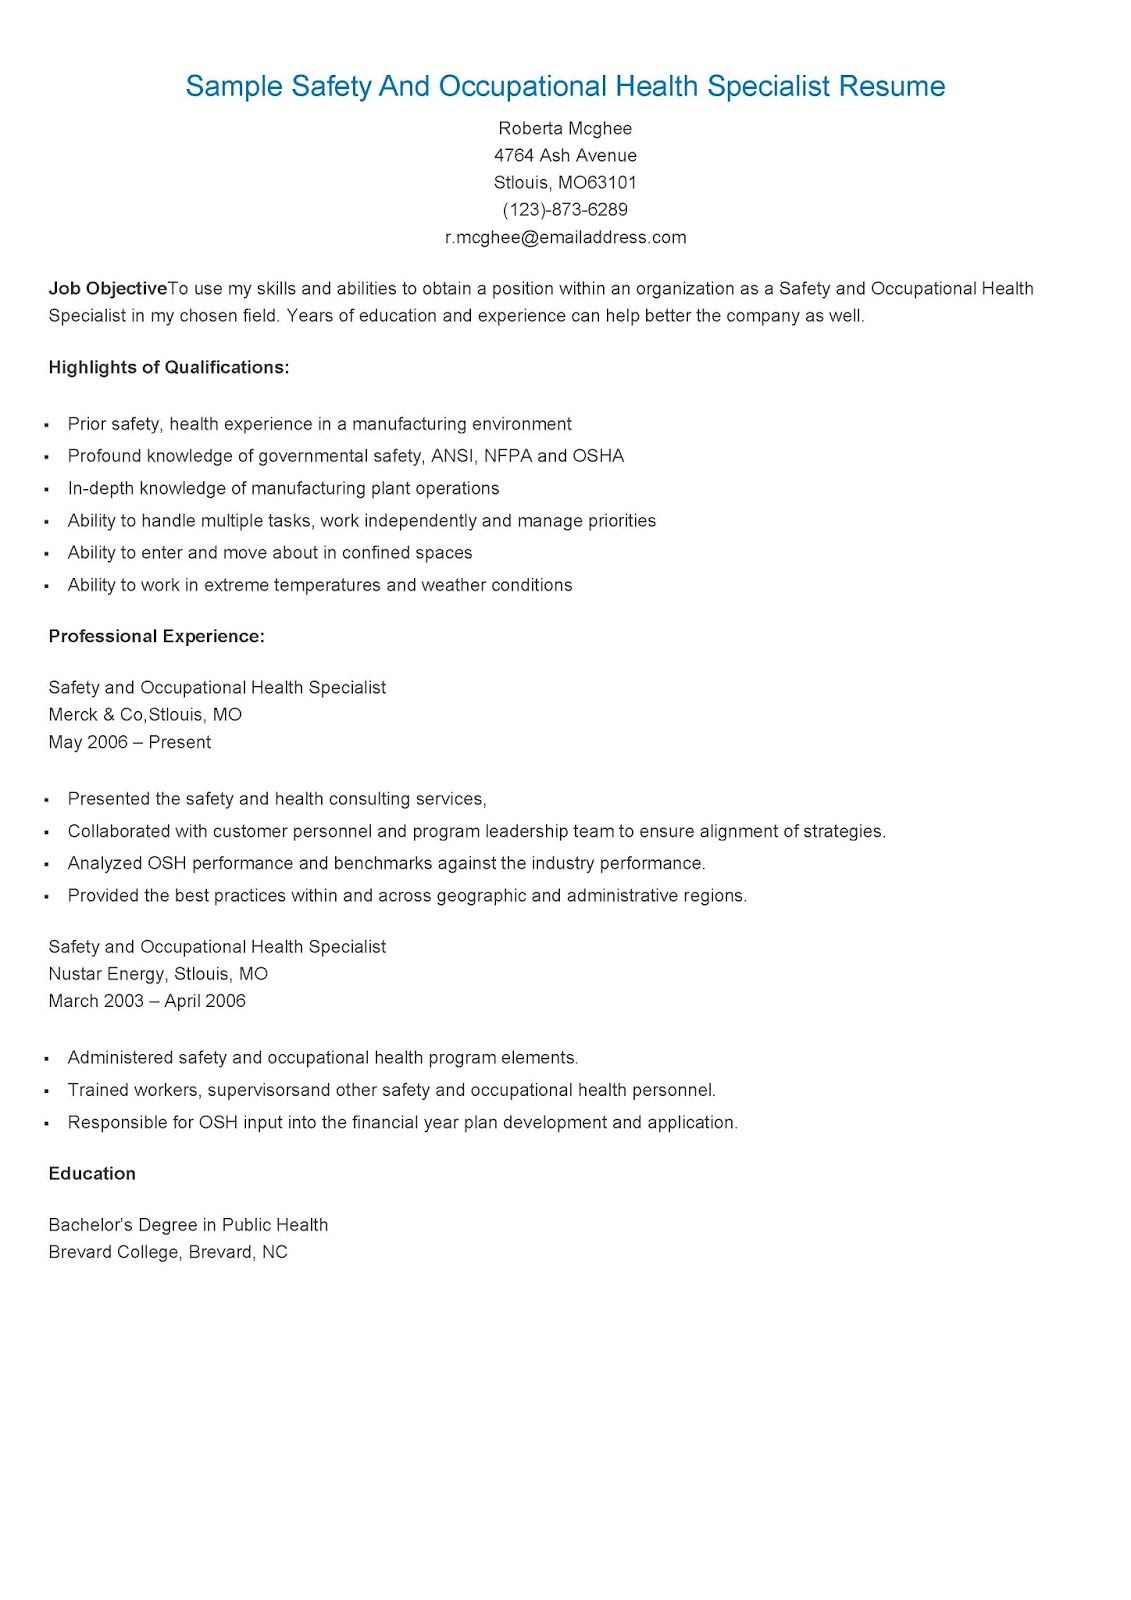 Sample Safety And Occupational Health Specialist Resume Resume Sample Resume Resume Objective Examples